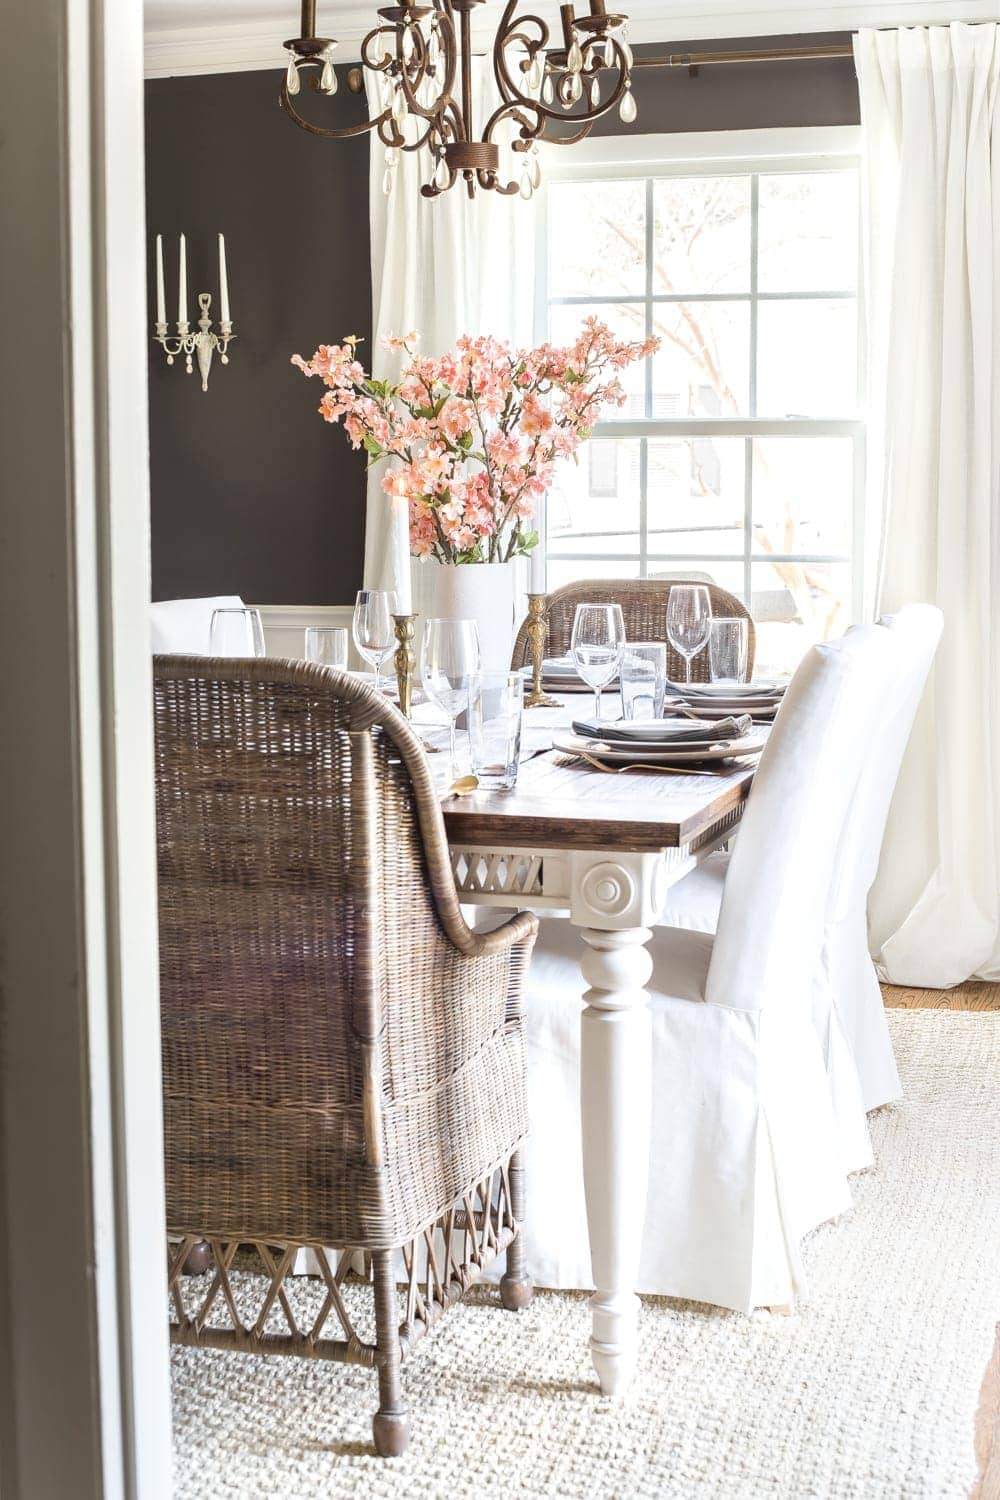 Simple Spring Home Tour | Faux cherry blossoms as a simple dining table centerpiece